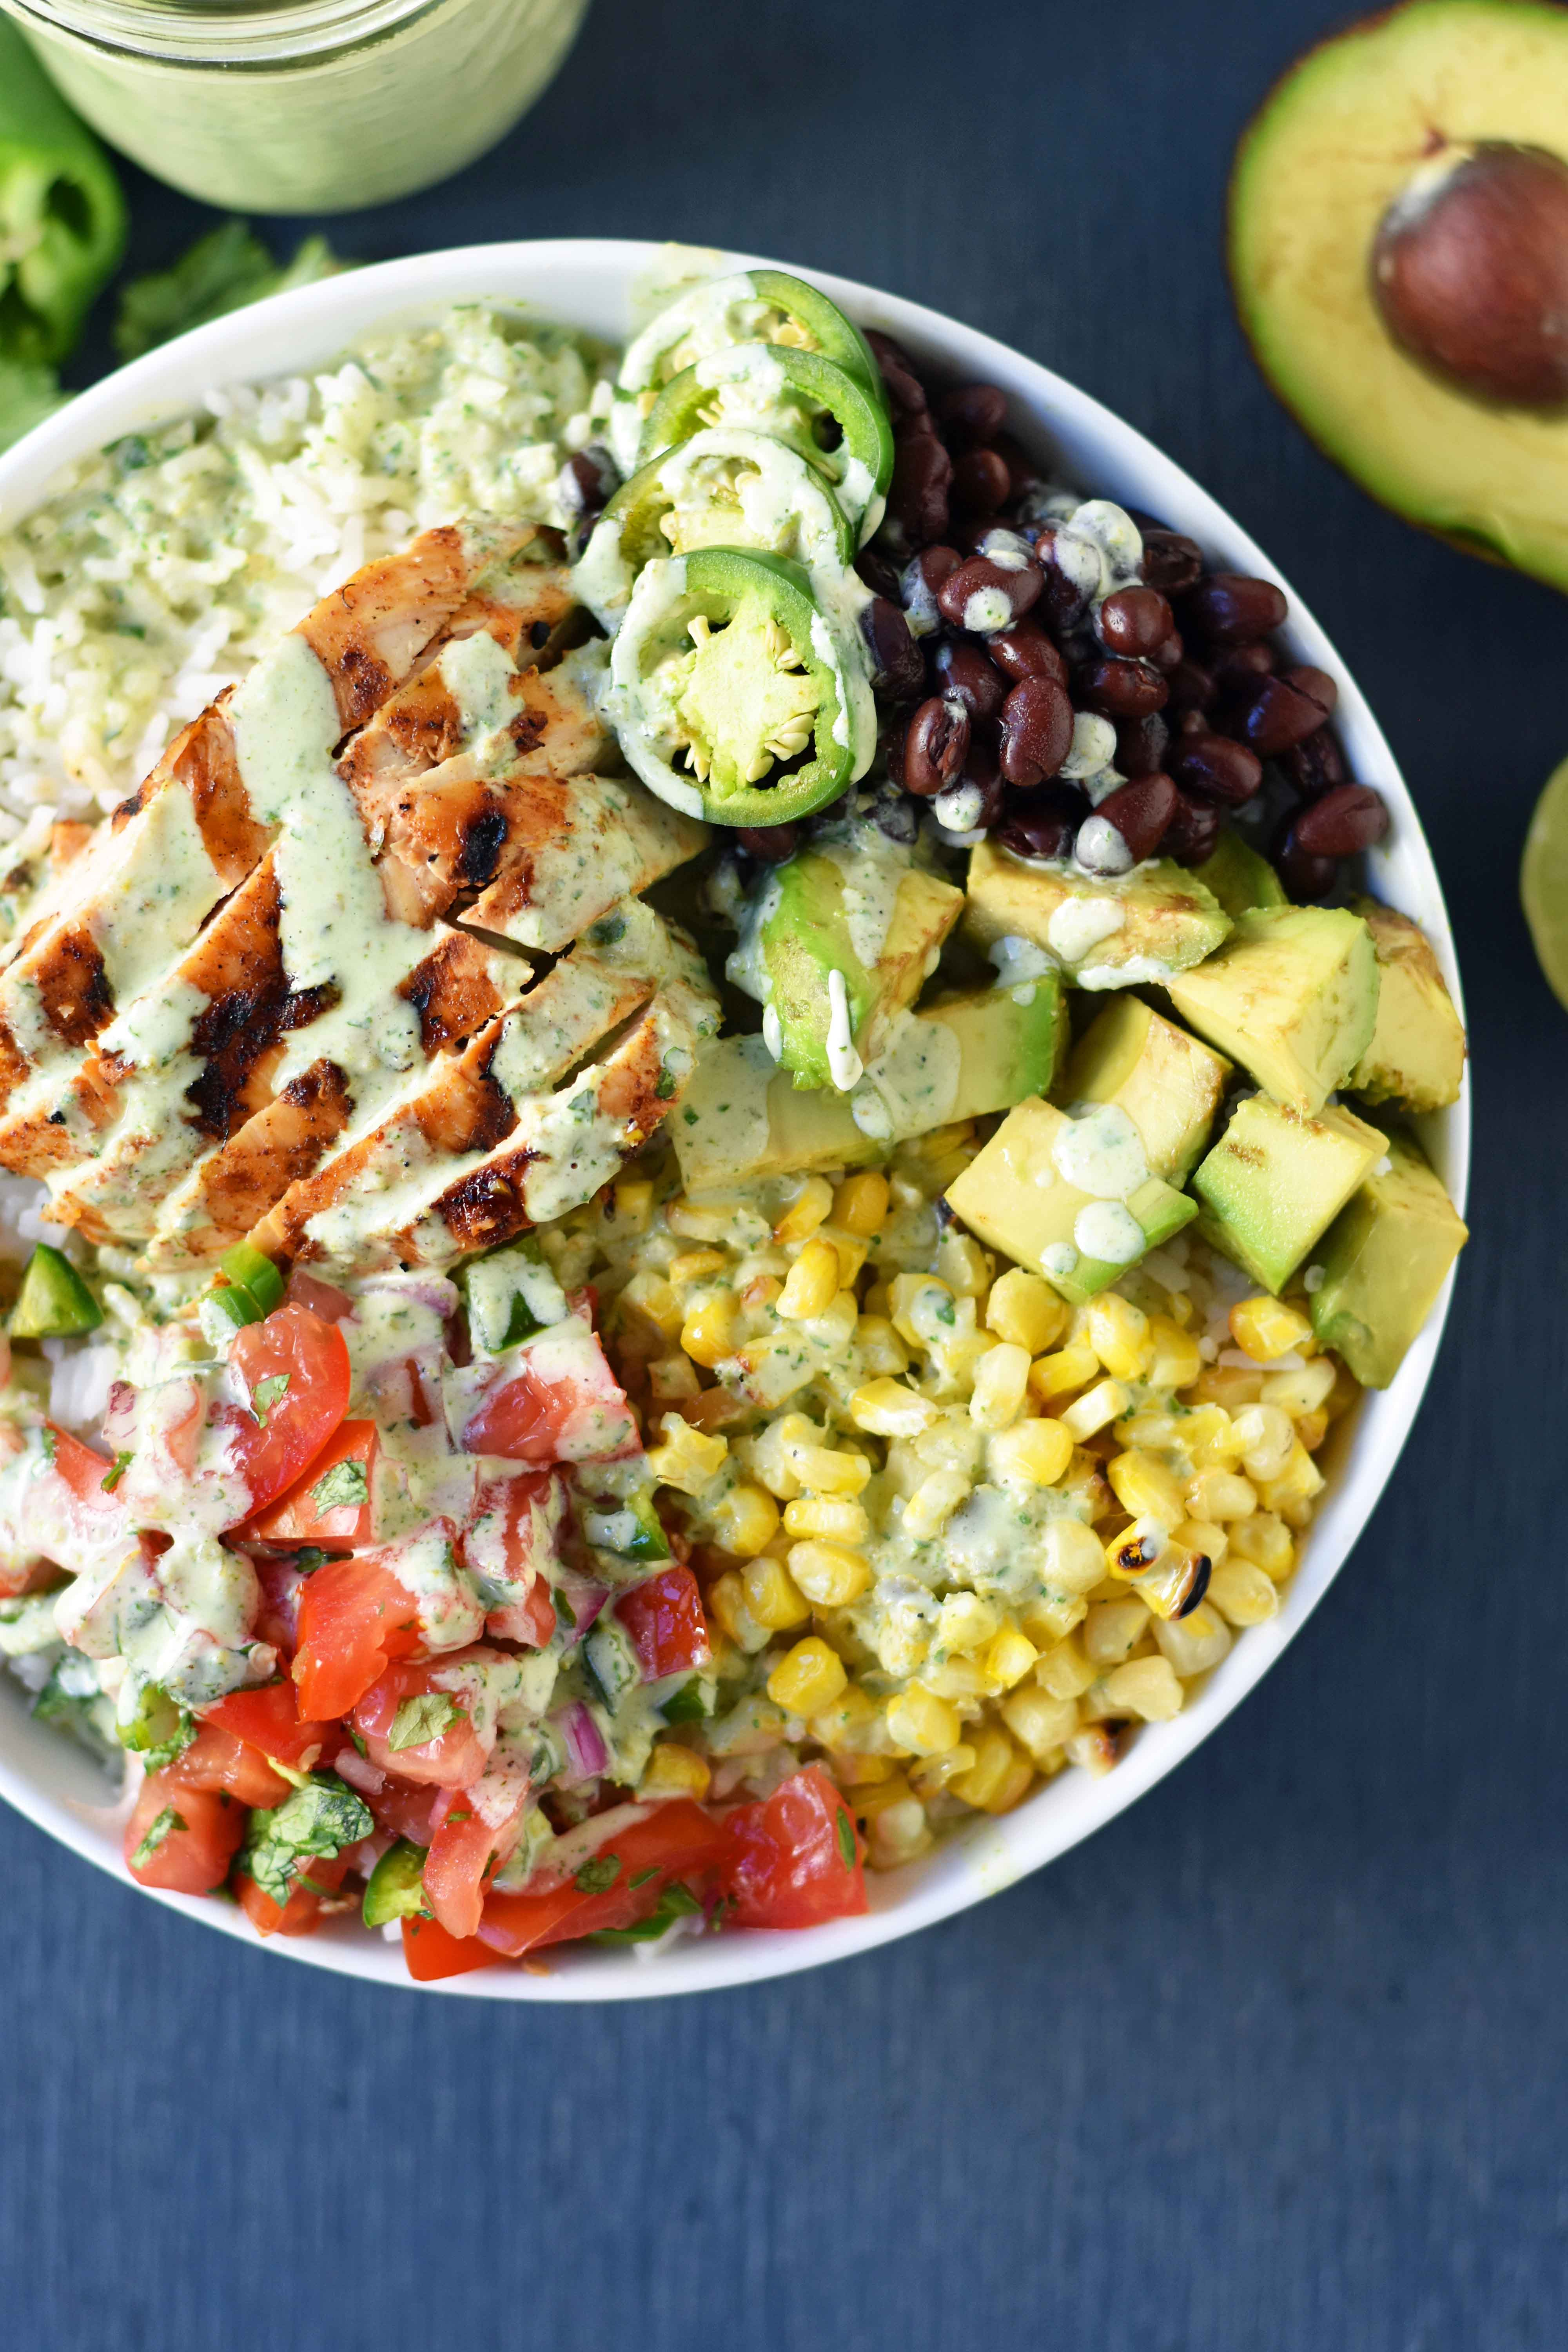 Grilled Chicken Burrito Bowls. Chipotle burrito bowls copycat recipe. Chili lime grilled chicken, pico de gallo, avocado, roasted corn, black beans, rice, and cilantro ranch dressing. A healthy mexican chicken taco bowl. www.modernhoney.com